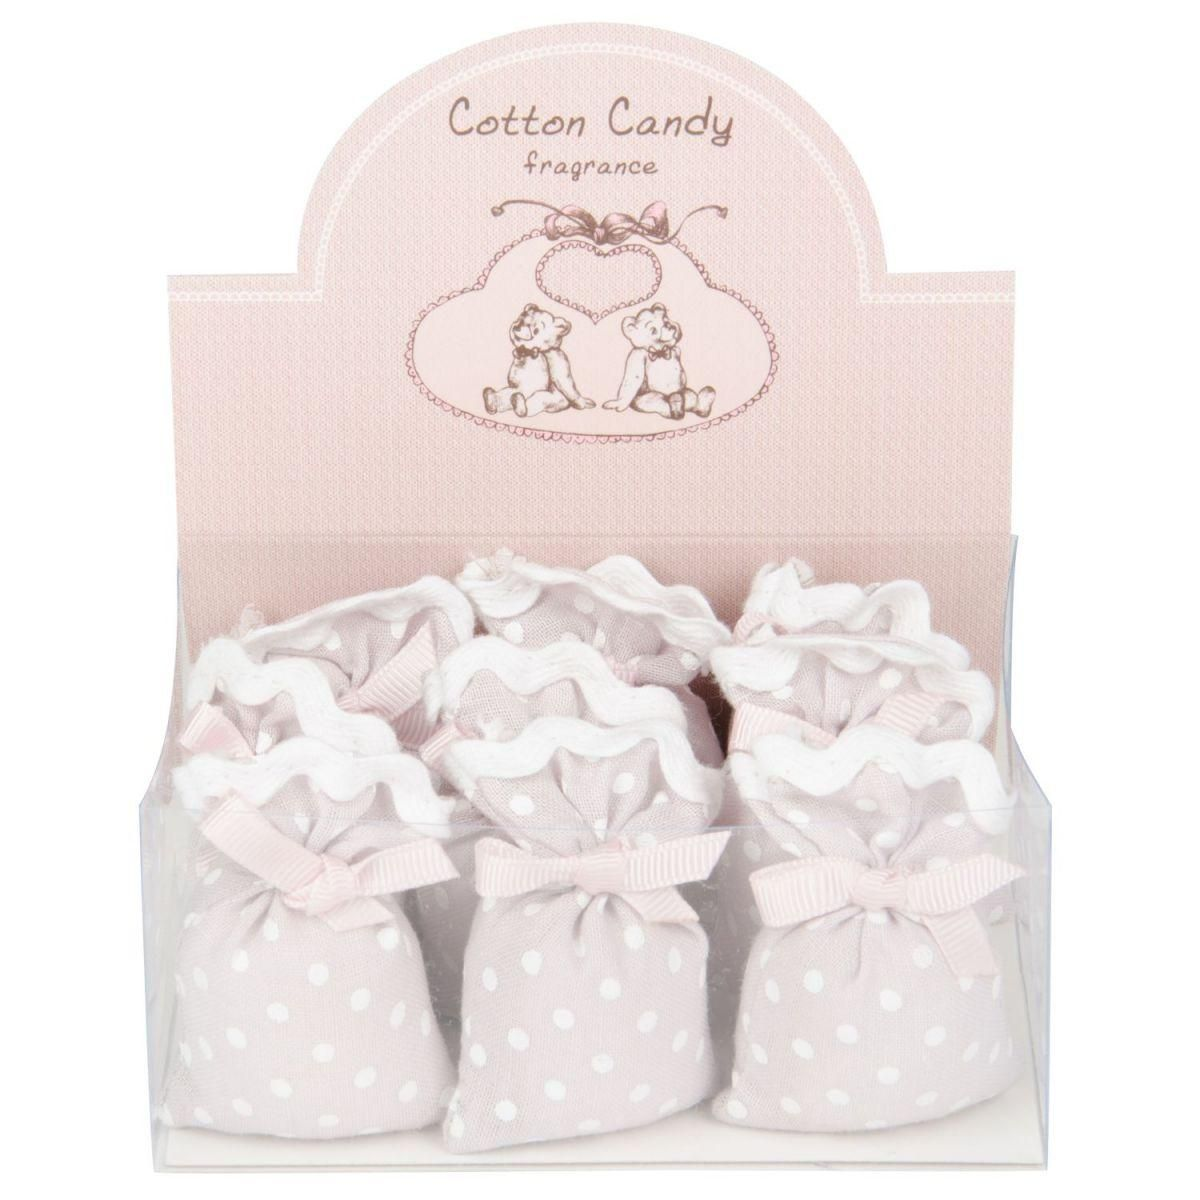 cotton candy linen sachet9 in giftbox de luxe pink